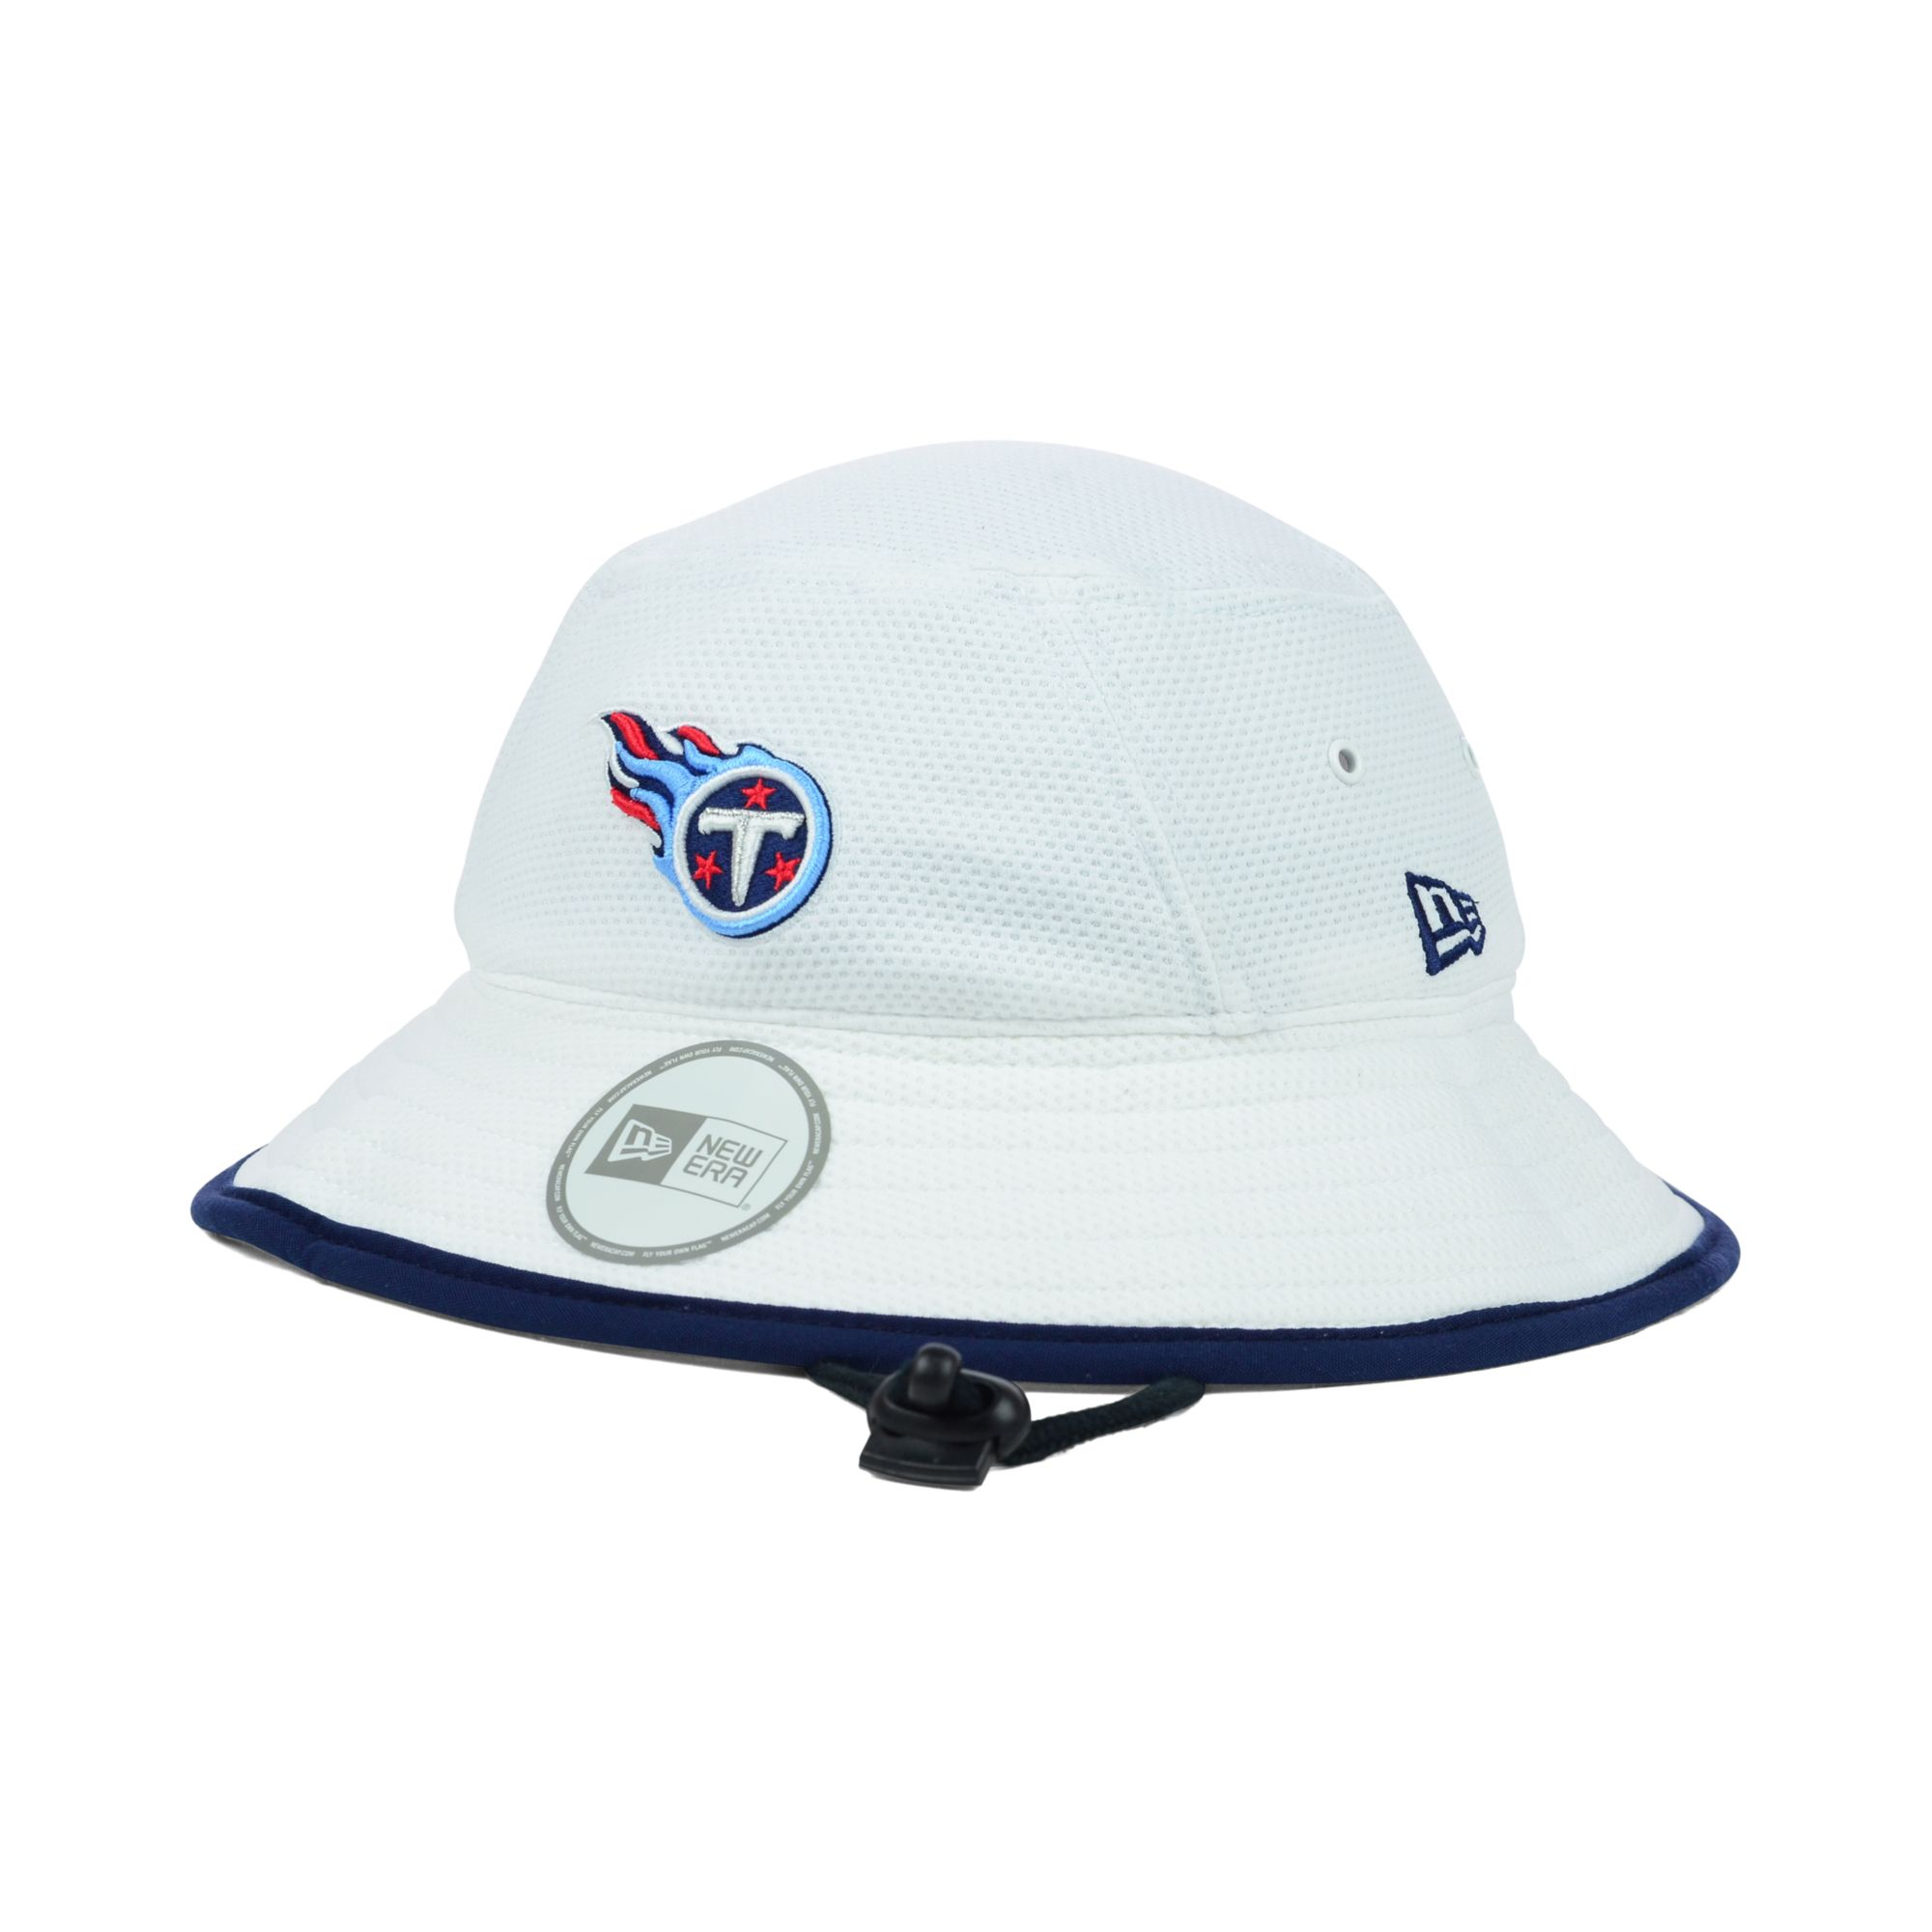 3455b3c81a7 Lyst - KTZ Tennessee Titans Training Camp Bucket Hat in White for Men